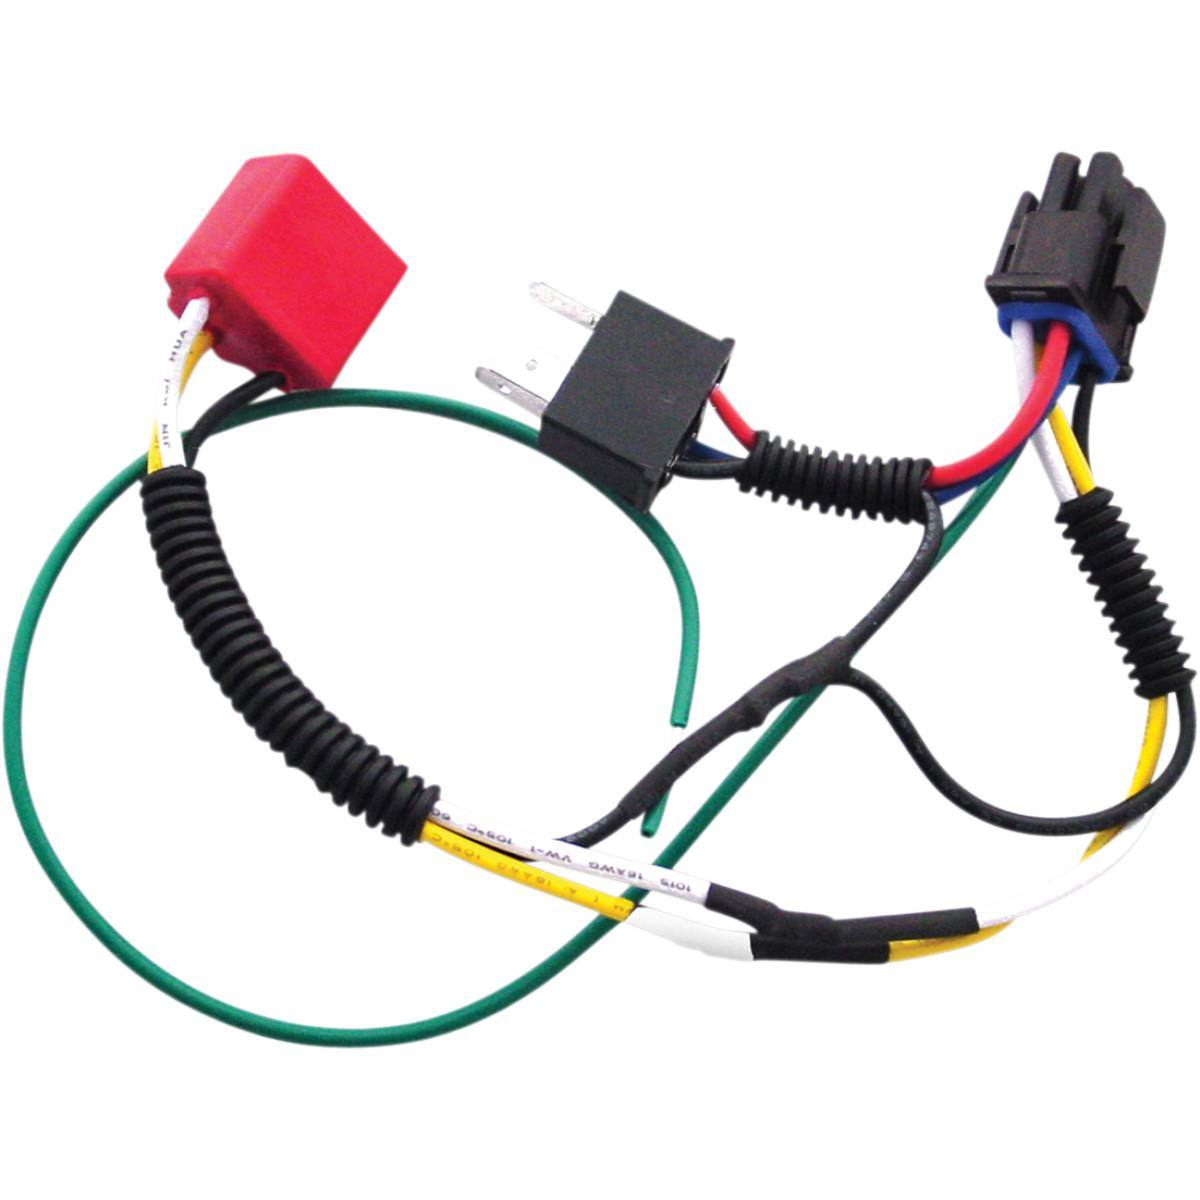 Single H4 Wiring Harness Kit for Plug-and-Play Diamond Star ... on h3 wiring harness, hr wiring harness, t3 wiring harness, h7 wiring harness, h15 wiring harness, c3 wiring harness, e2 wiring harness, h22 wiring harness, h1 wiring harness, b2 wiring harness, h8 wiring harness, s13 wiring harness, ipf wiring harness, g9 wiring harness, h13 wiring harness, h2 wiring harness, f1 wiring harness, h11 wiring harness, drl wiring harness,